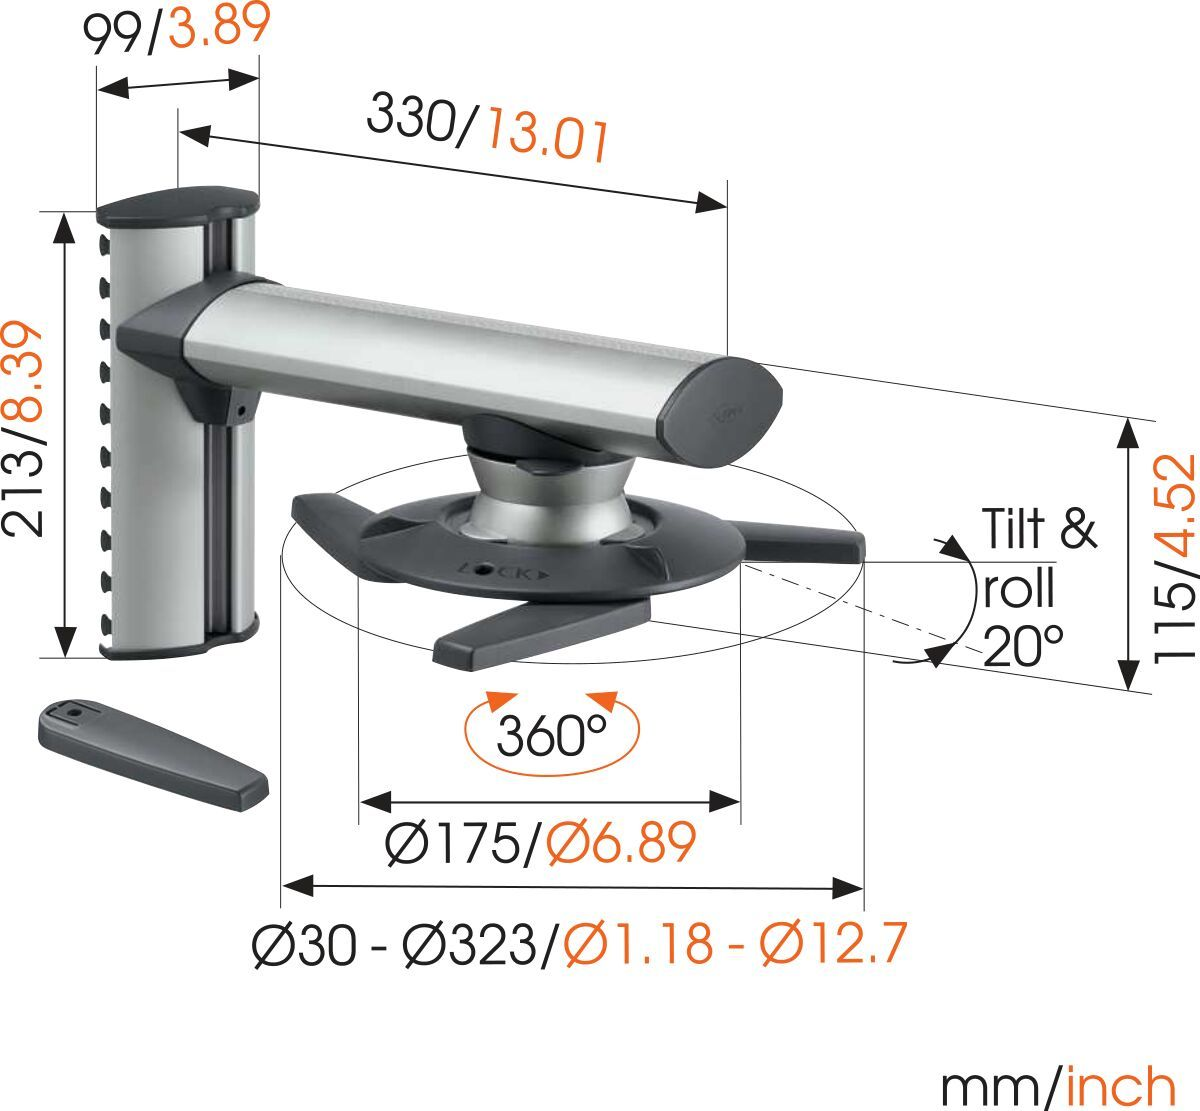 Vogel's EPW 6565 Projector Wall Mount - Charge maximale : 10 - Charge maximale : Dimensions